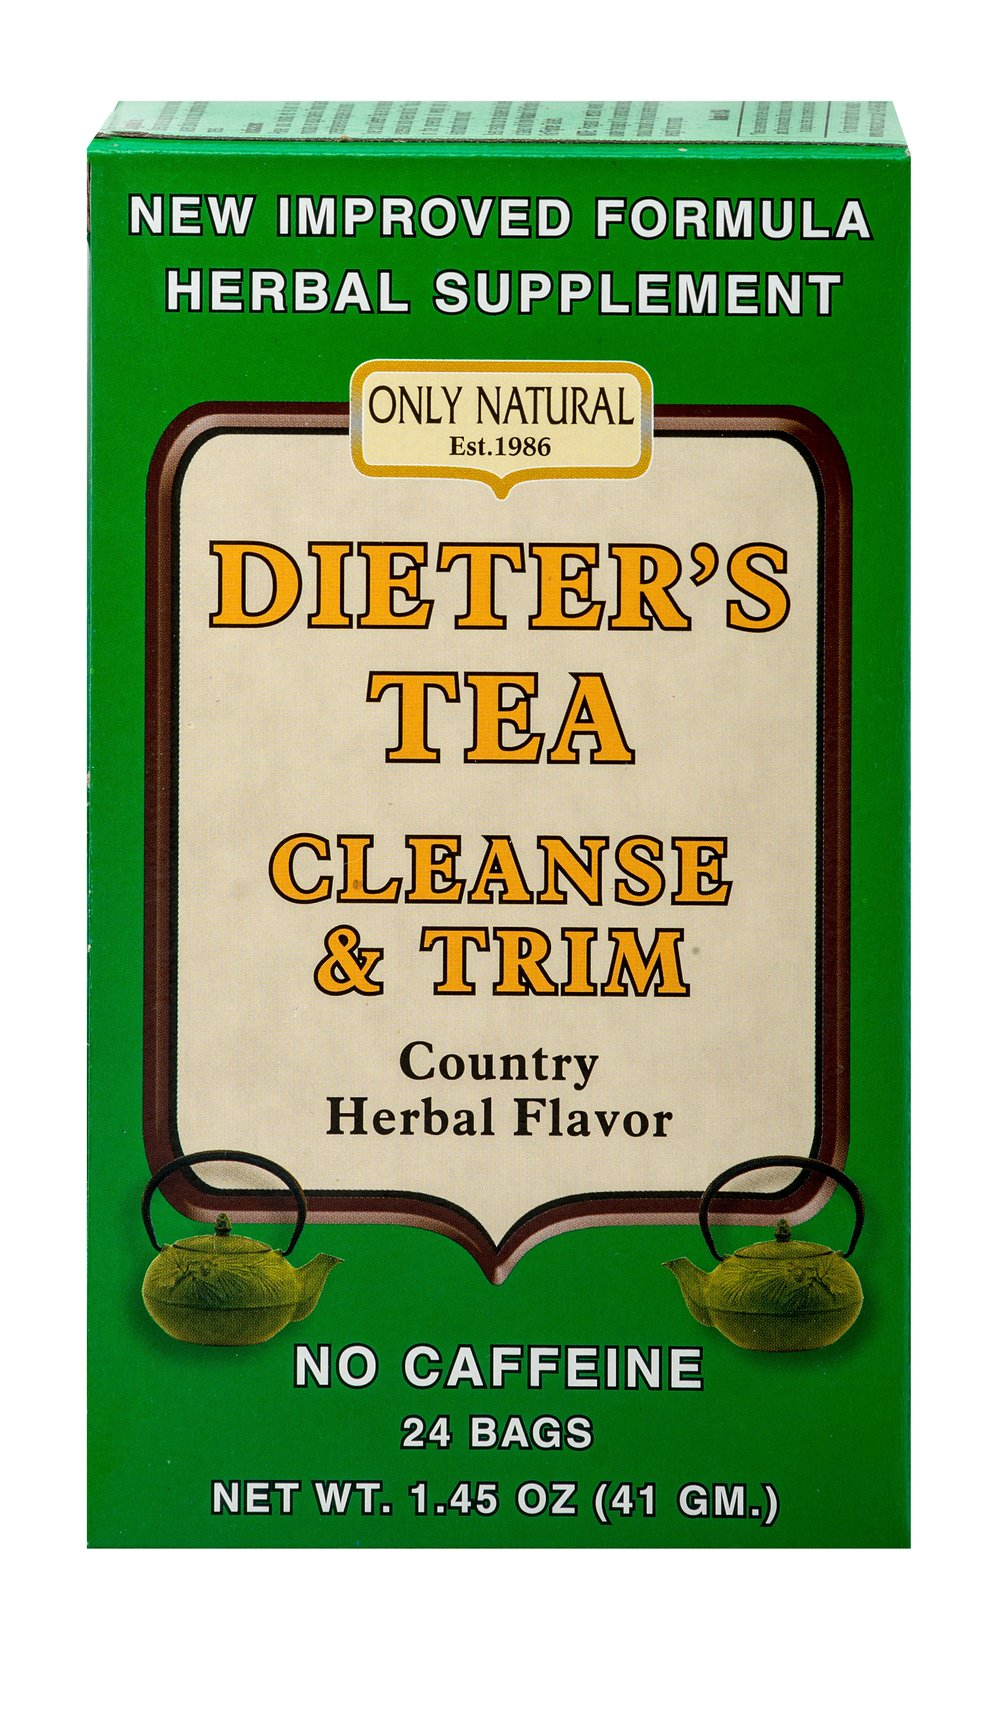 Dieter's Tea Cleanse & Trim <p><strong>From the Manufacturer's Label: </strong></p><p>Dieter's Tea Cleanse & Trim from Only Natural has a country herbal flavor, a new and improved formula, and is caffeine free. The herbs combined in this tea include Senna, Uva Ursi, and Alfalfa, which are carefully selected for your benefit. Feel wondeful after drinking this delicious tea!<br /></p> 24 Tea Bags  $10.99